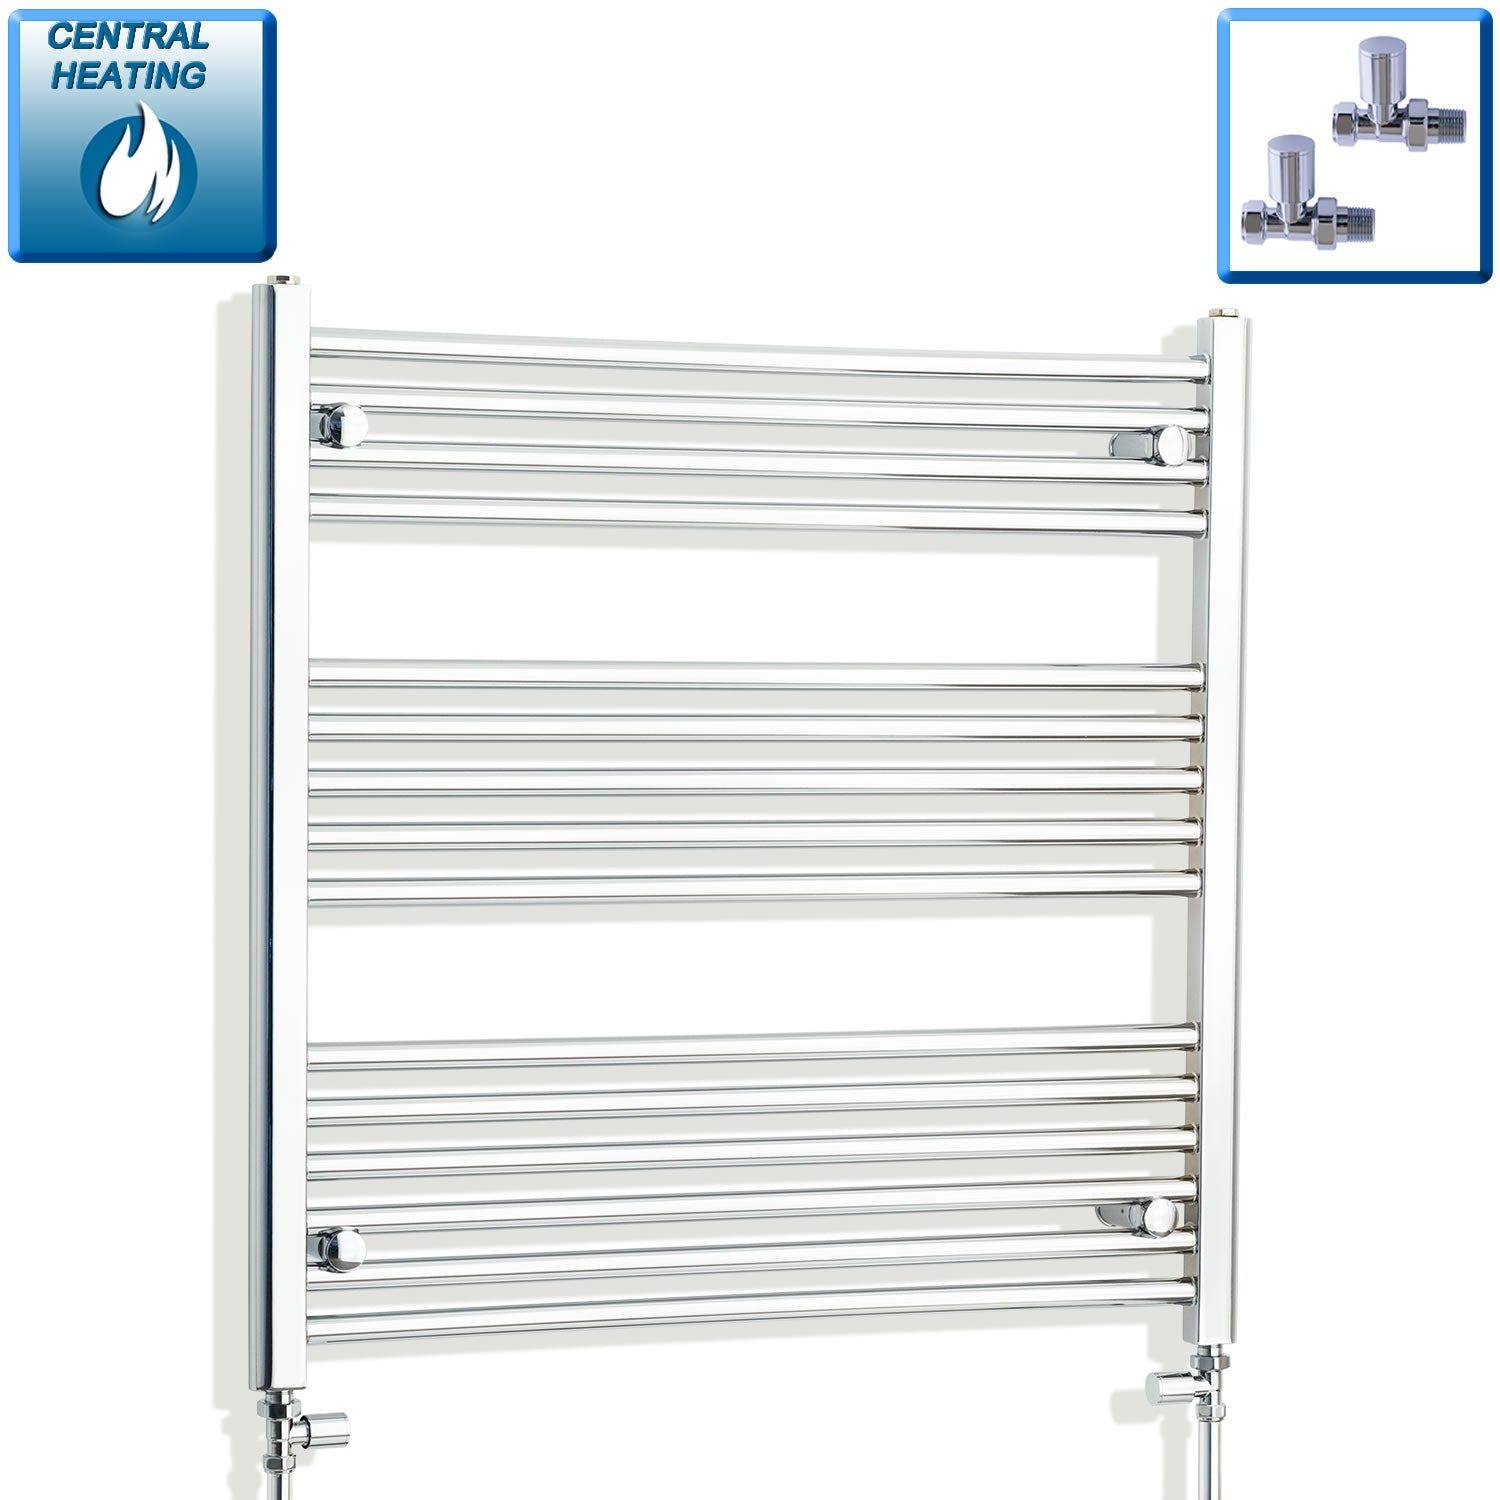 750mm Wide 800mm High Chrome Towel Rail Radiator With Straight Valve